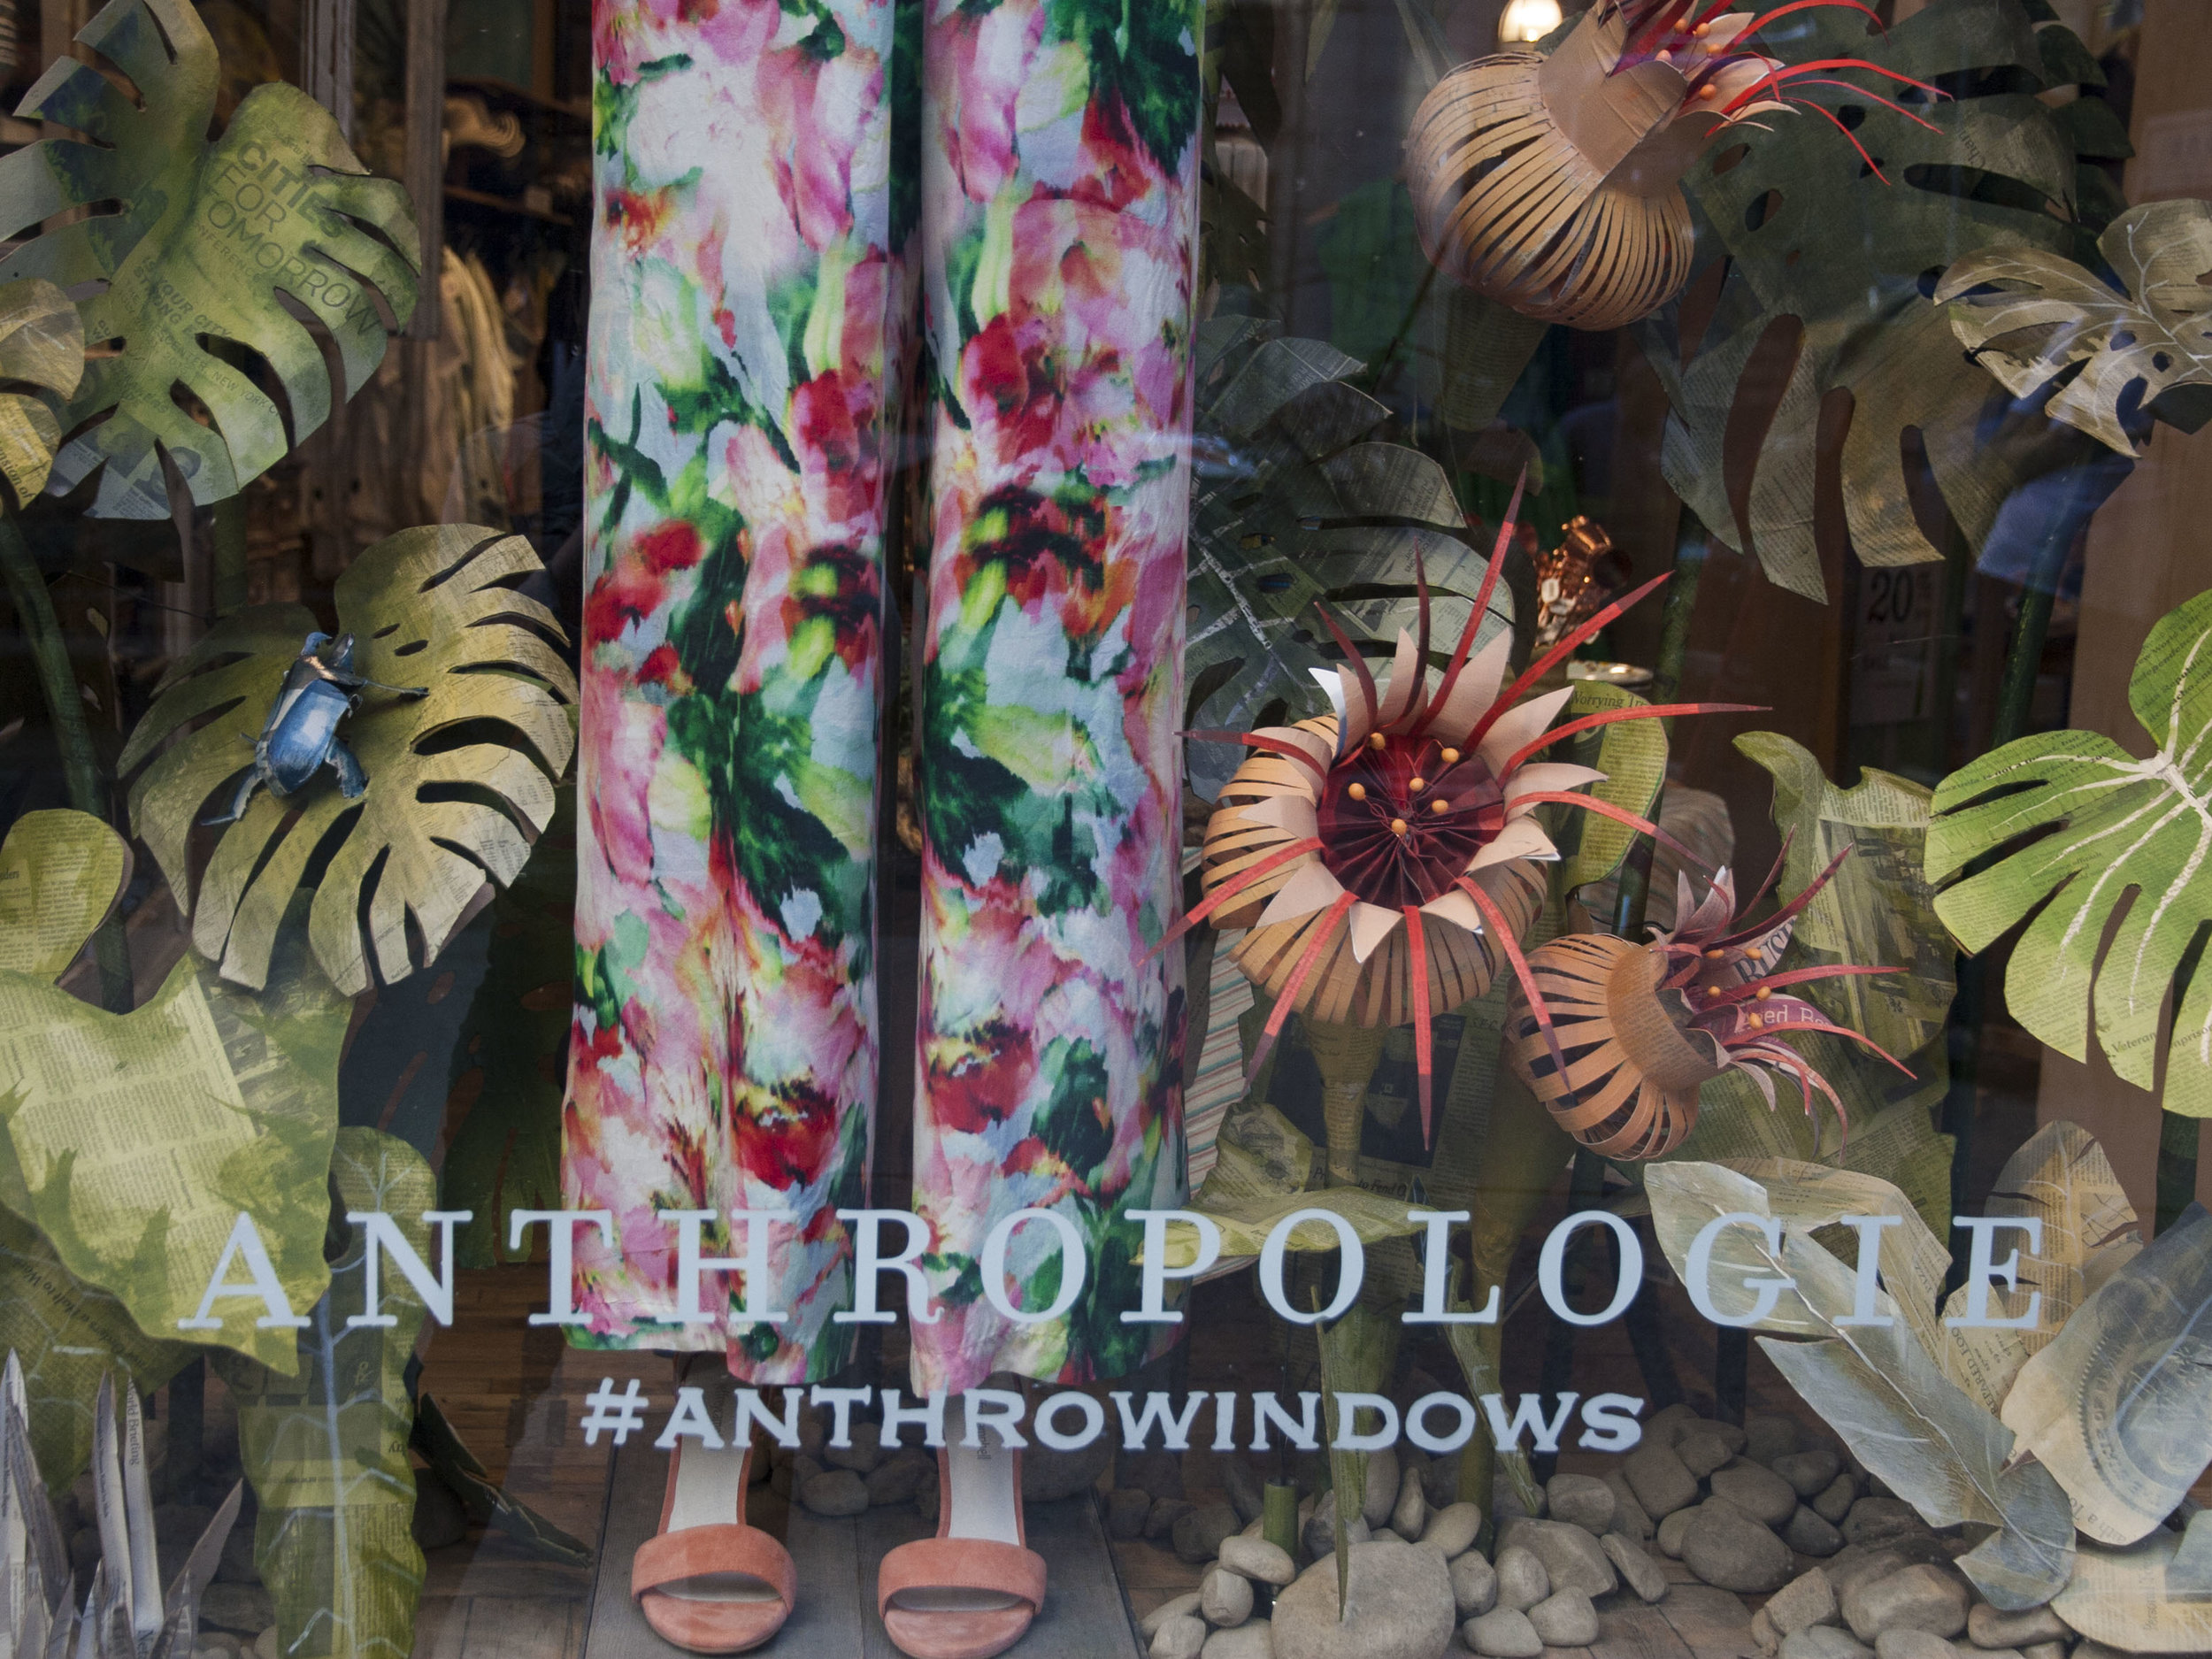 - Anthropologie Rain Forest Windows